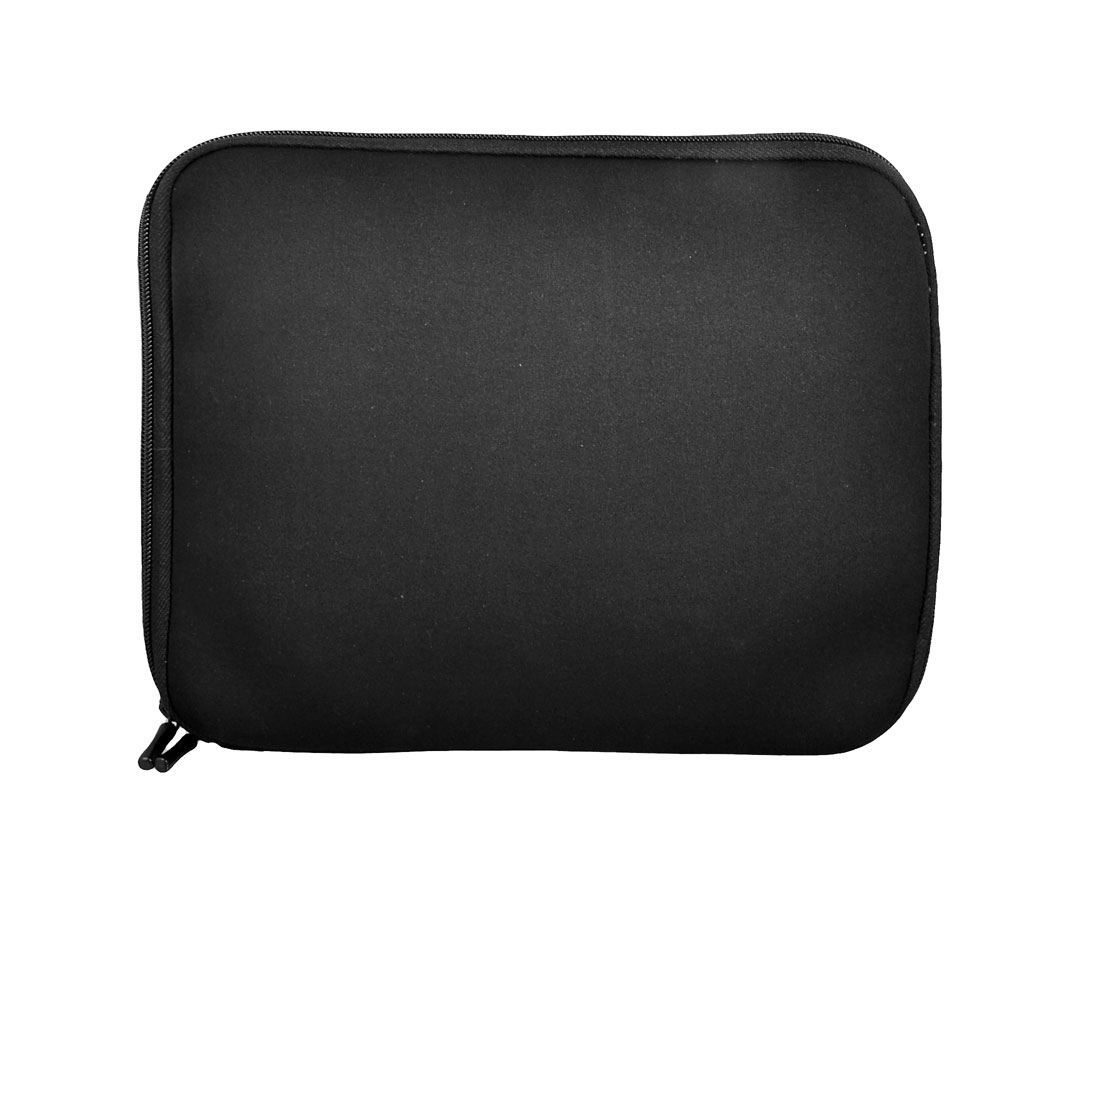 "Black Neoprene Double Zipper Closure Bag for 10"" PC Laptop Notebook"